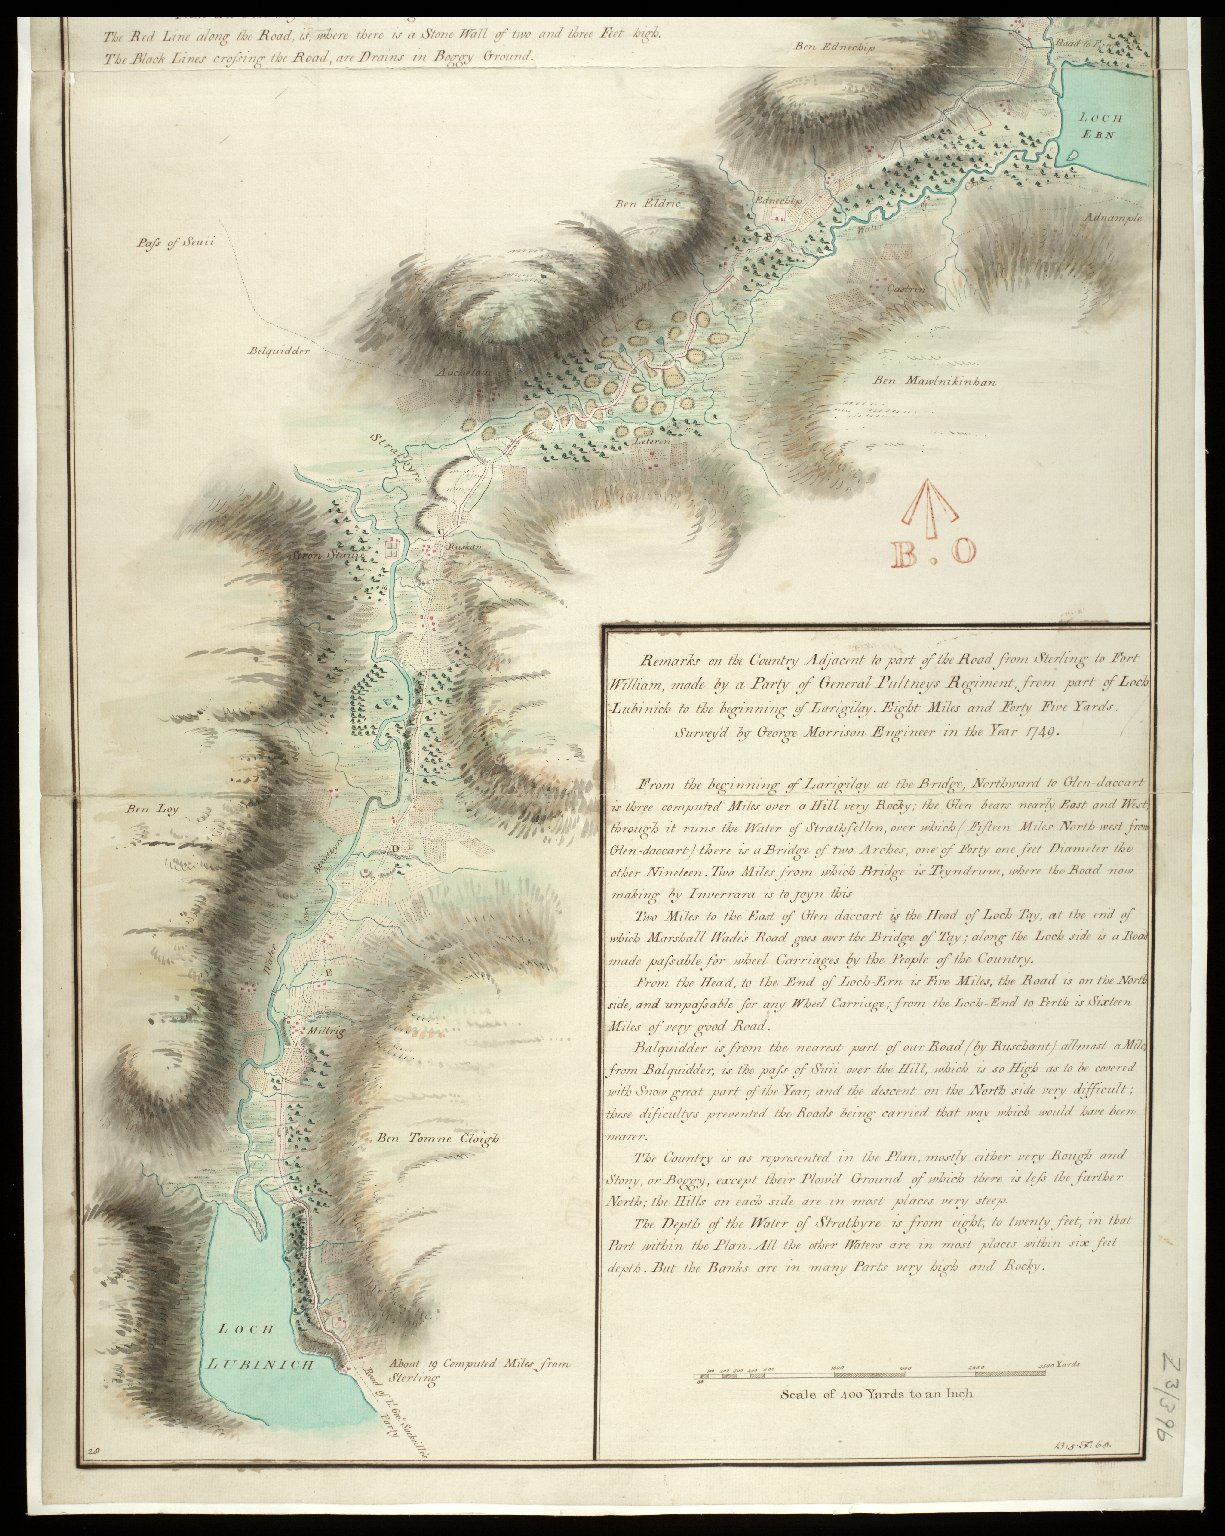 Survey of Part of the Road from Sterling to Fort William; Made by the Party of Genl. Pultneys Regiment in 1749 [copy] [2 of 2]